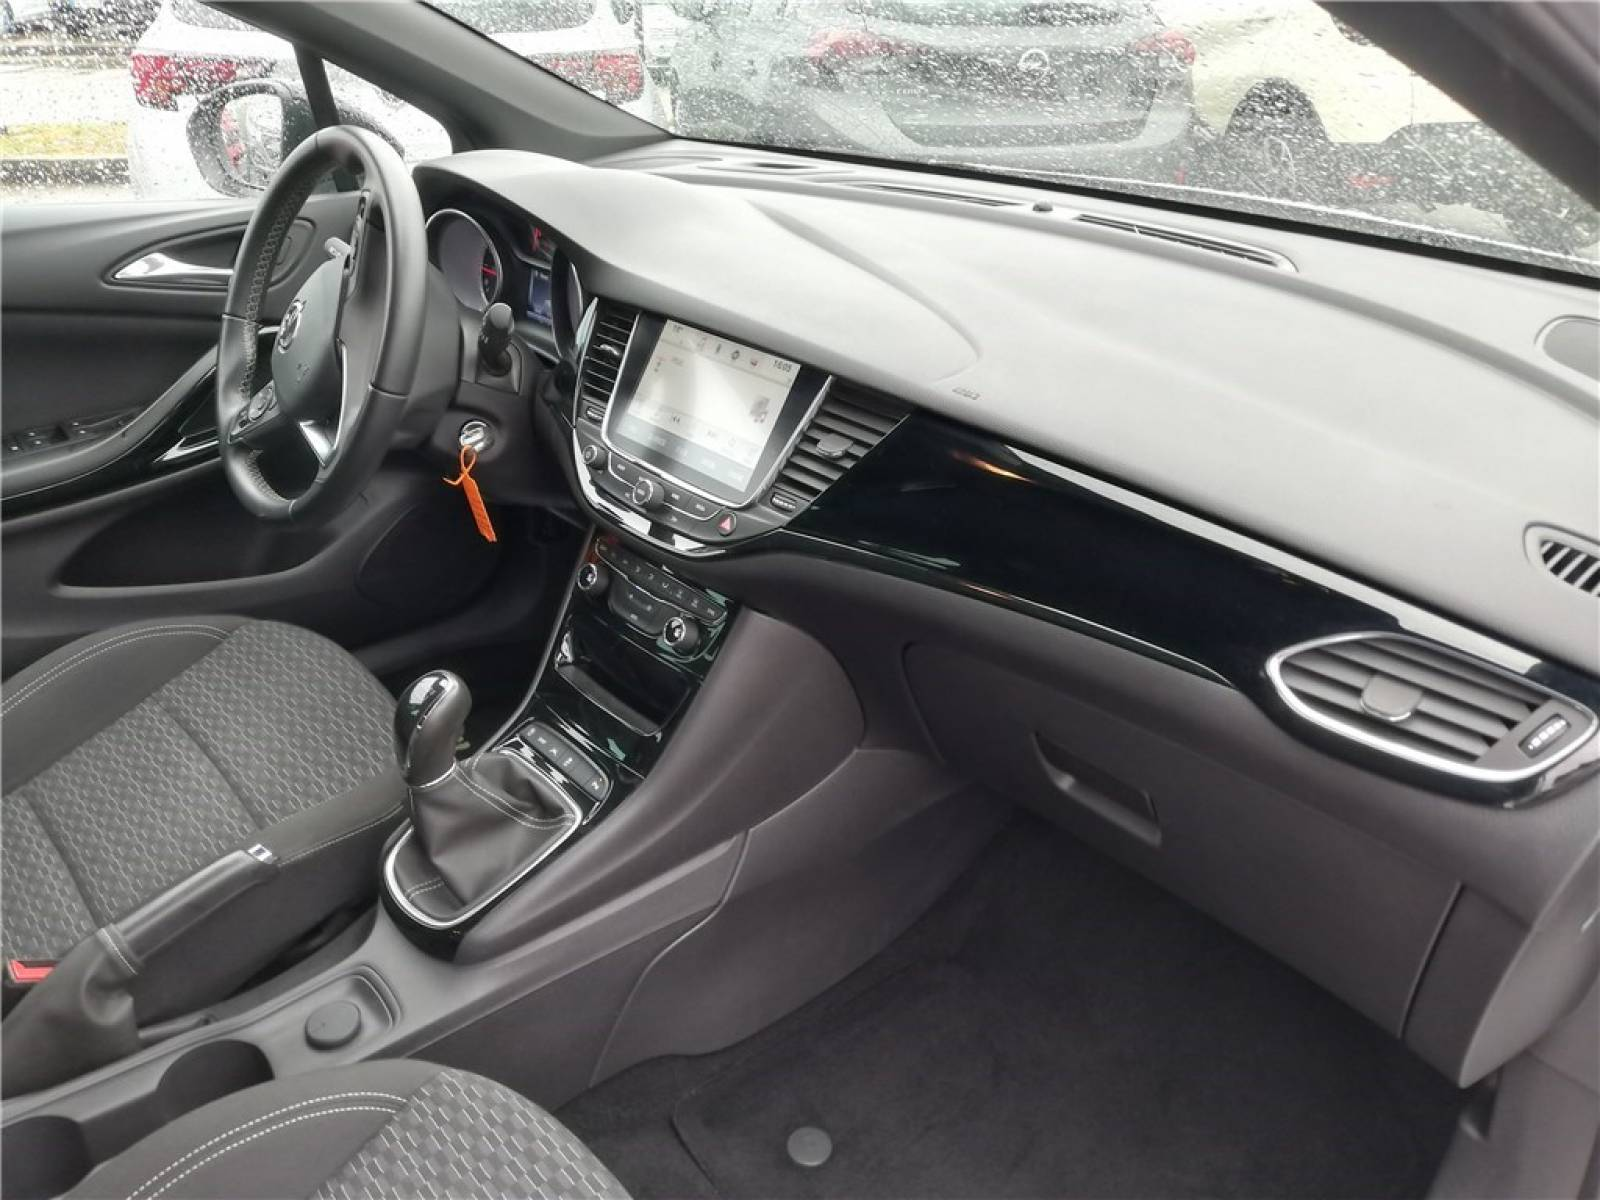 OPEL Astra 1.0 Turbo 105 ch ECOTEC Start/Stop - véhicule d'occasion - Groupe Guillet - Opel Magicauto - Chalon-sur-Saône - 71380 - Saint-Marcel - 13